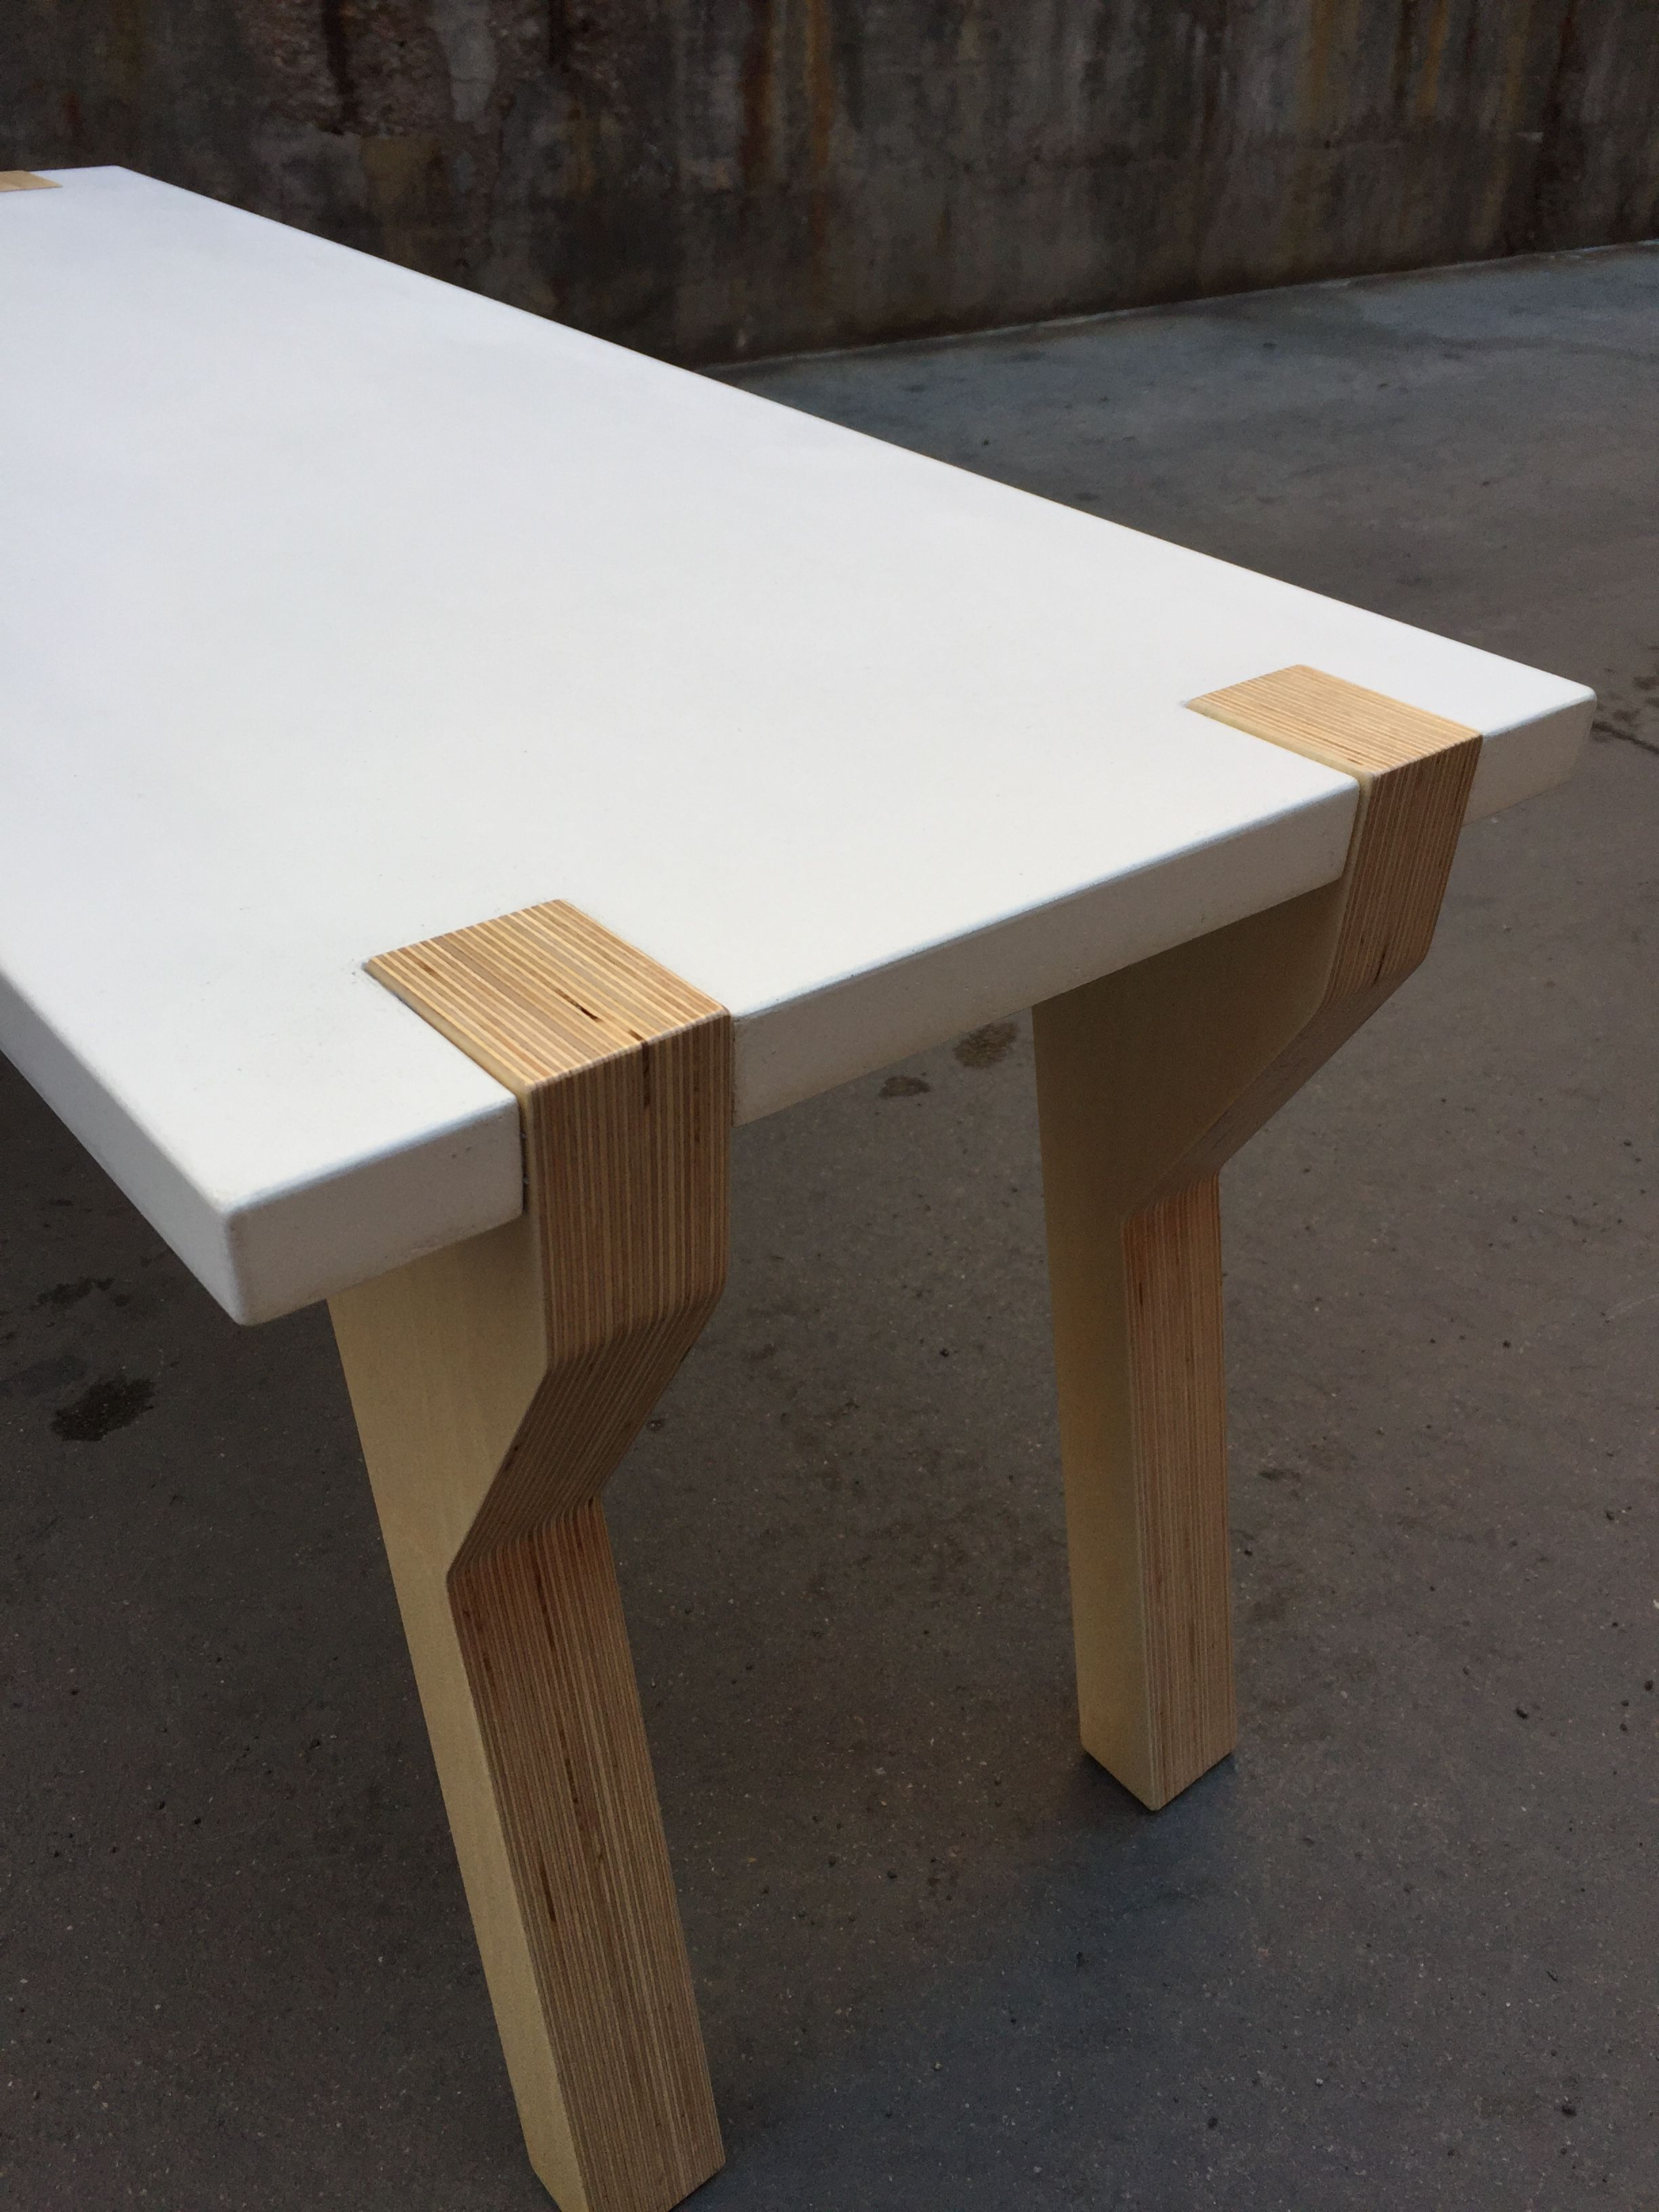 Buy a Hand Crafted Concrete Coffee Table made to order from Metz